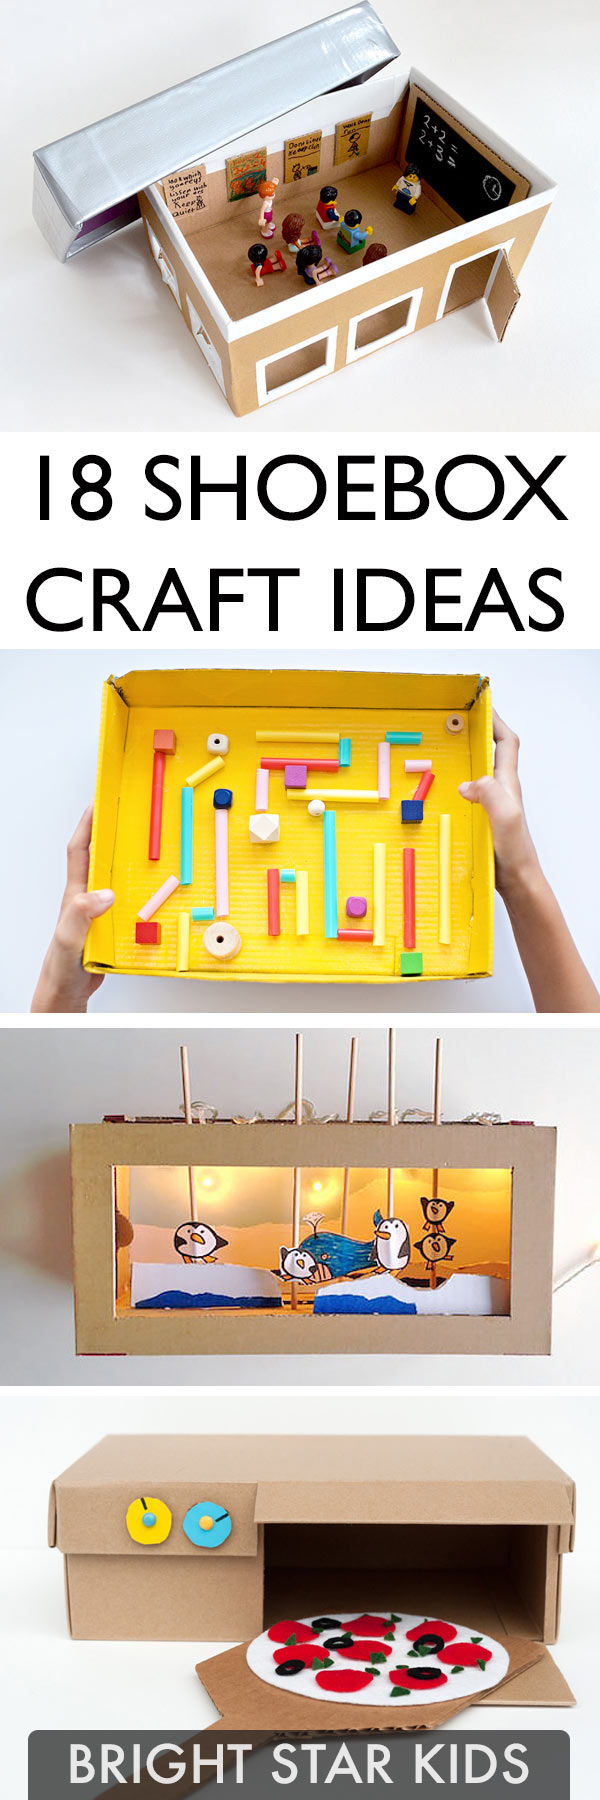 18 Shoebox Craft Ideas Bright Star Kids